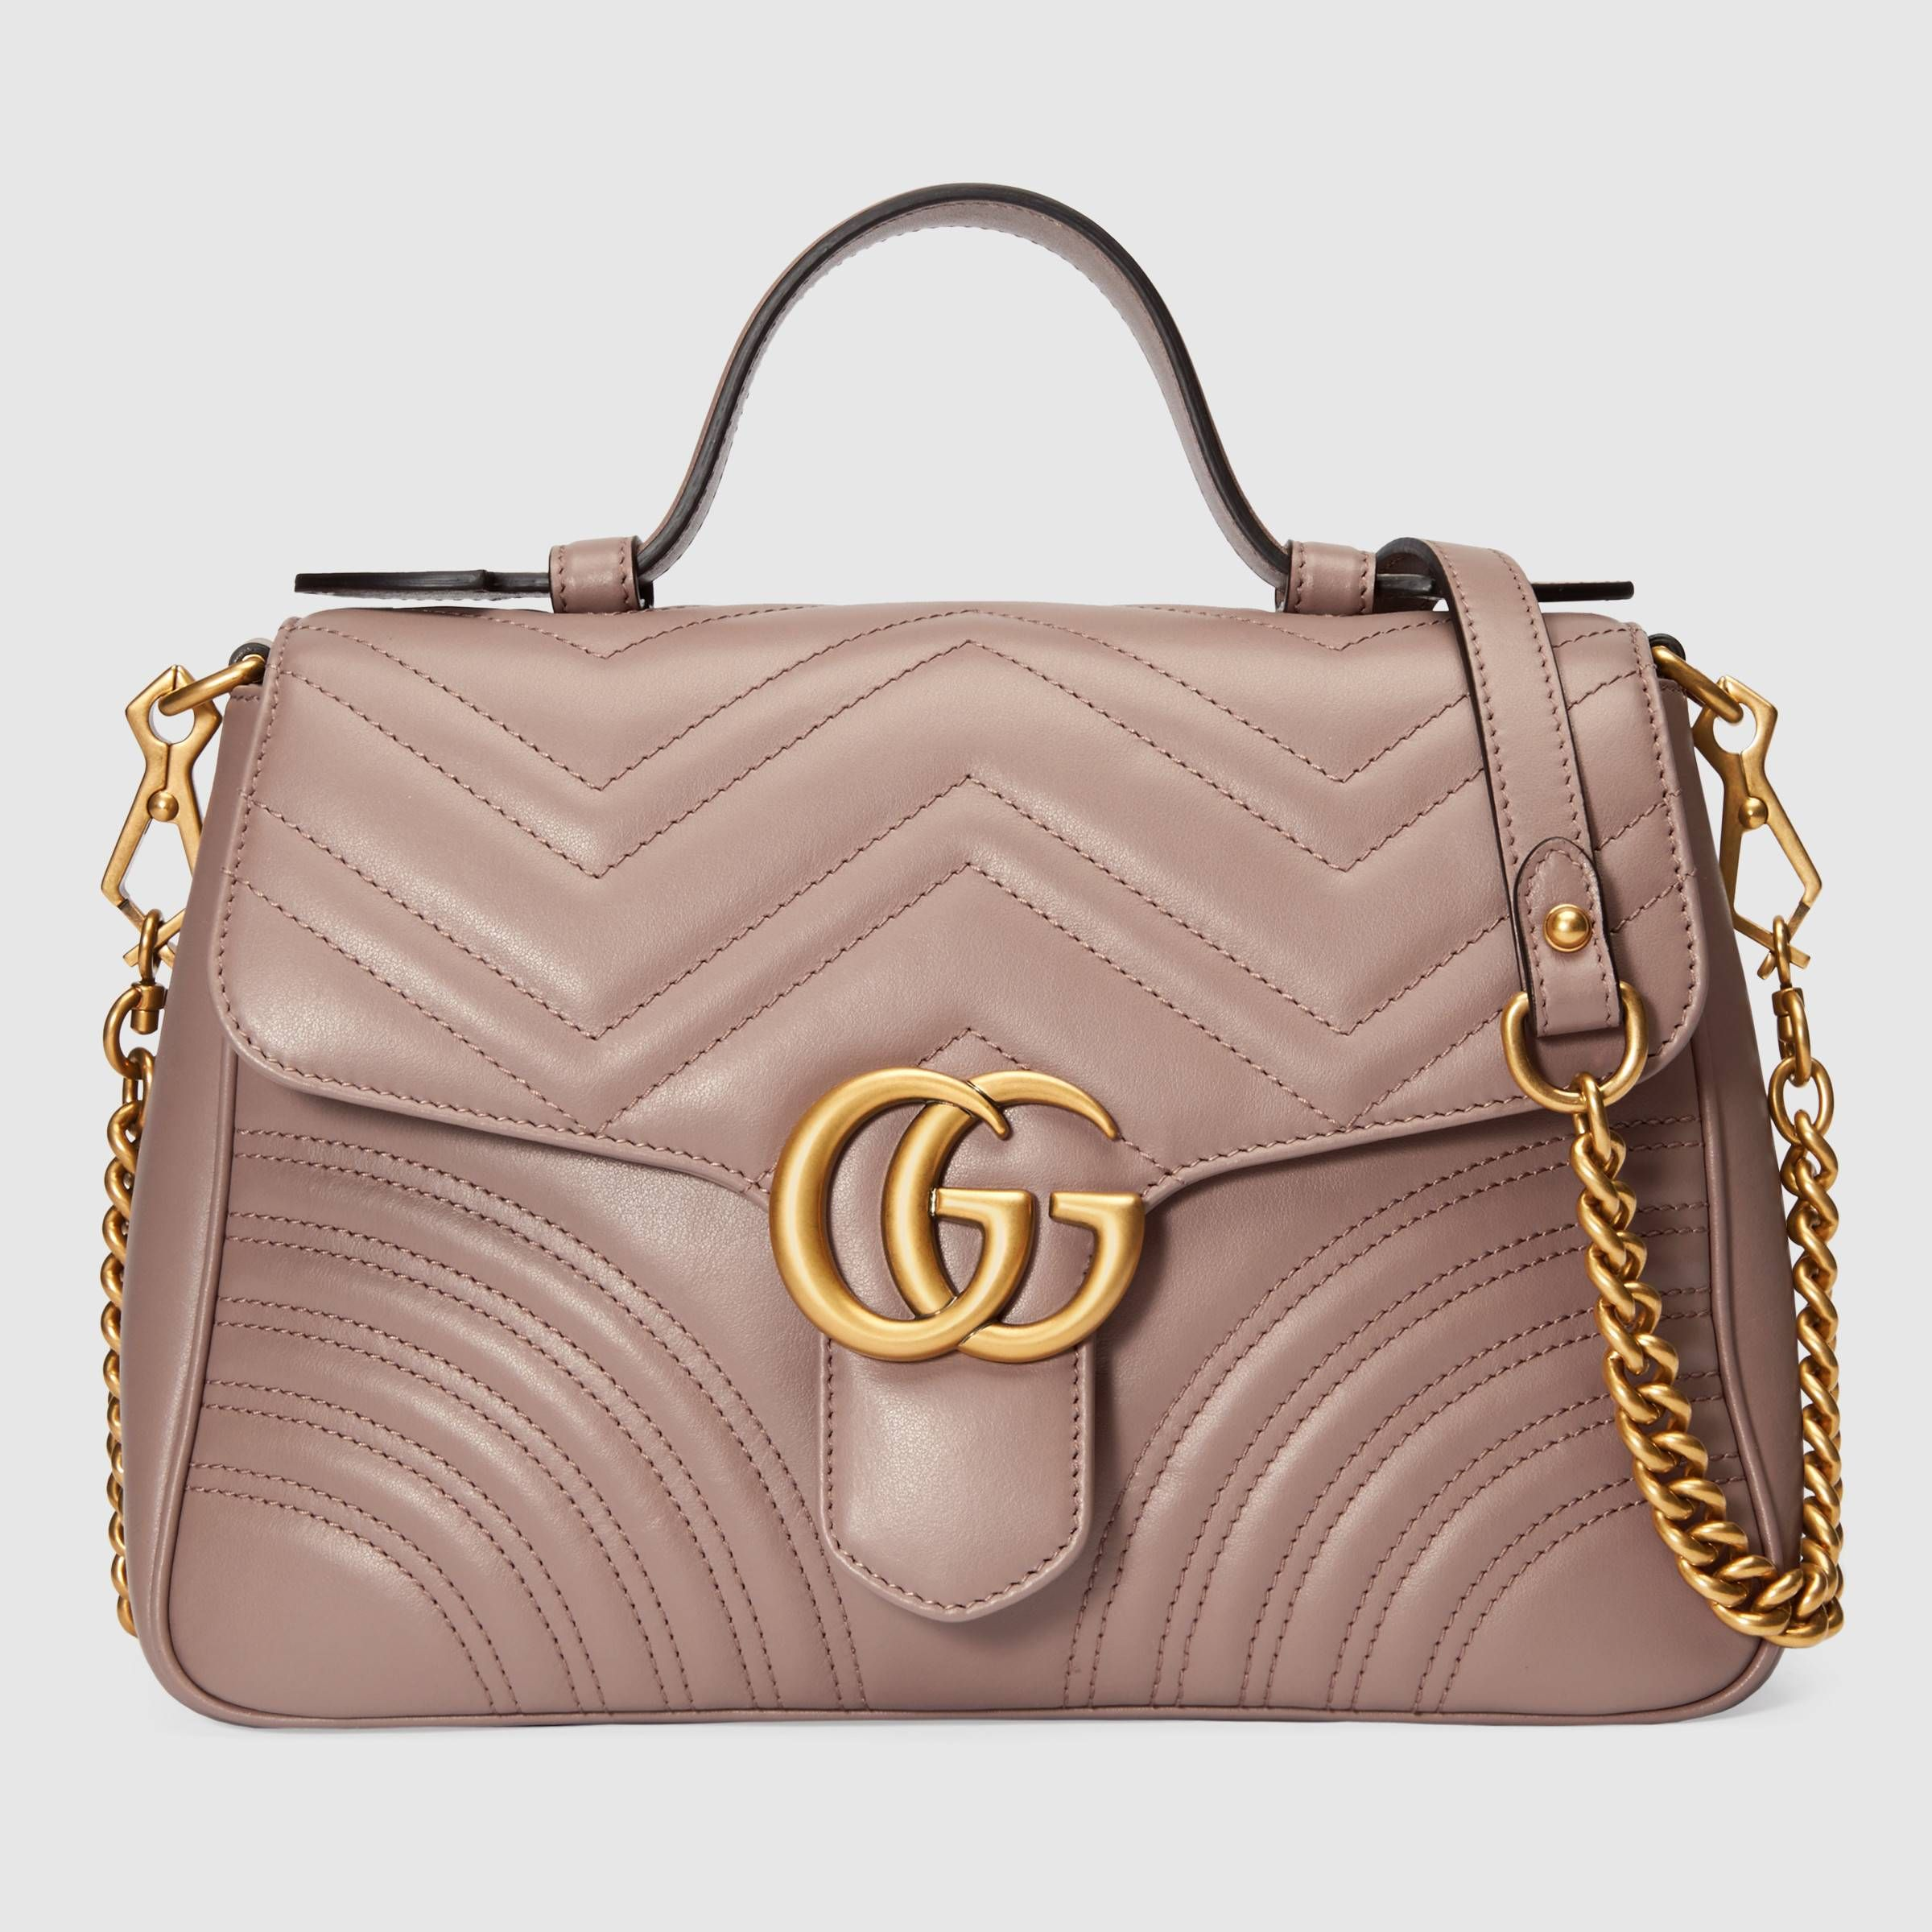 GG Marmont small top handle bag - Gucci Women's Top Handles & Boston Bags  498110DTDIT5729   Women handbags, Top handle bag, Bags